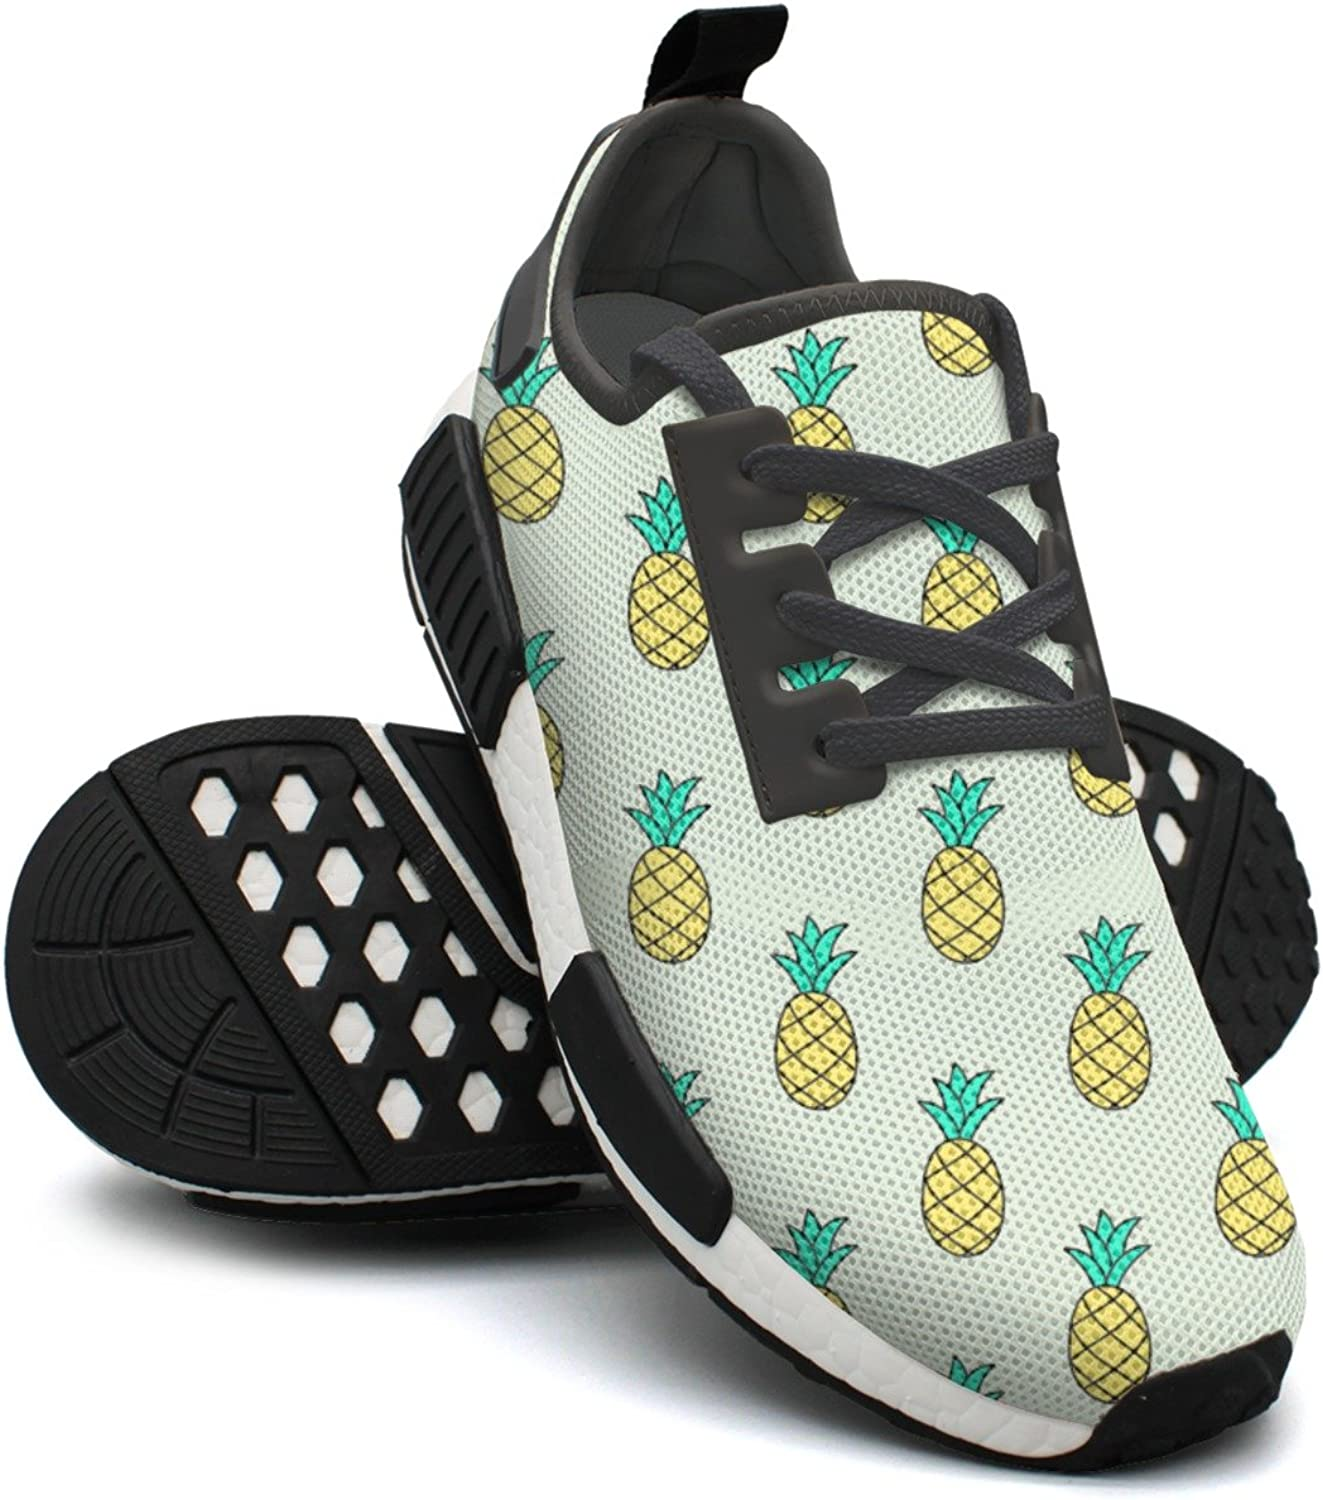 Hand-Drawn Pattern with Pineapple Women's Cute Lightweight Running Sneakers Gym Outdoor Basketball shoes